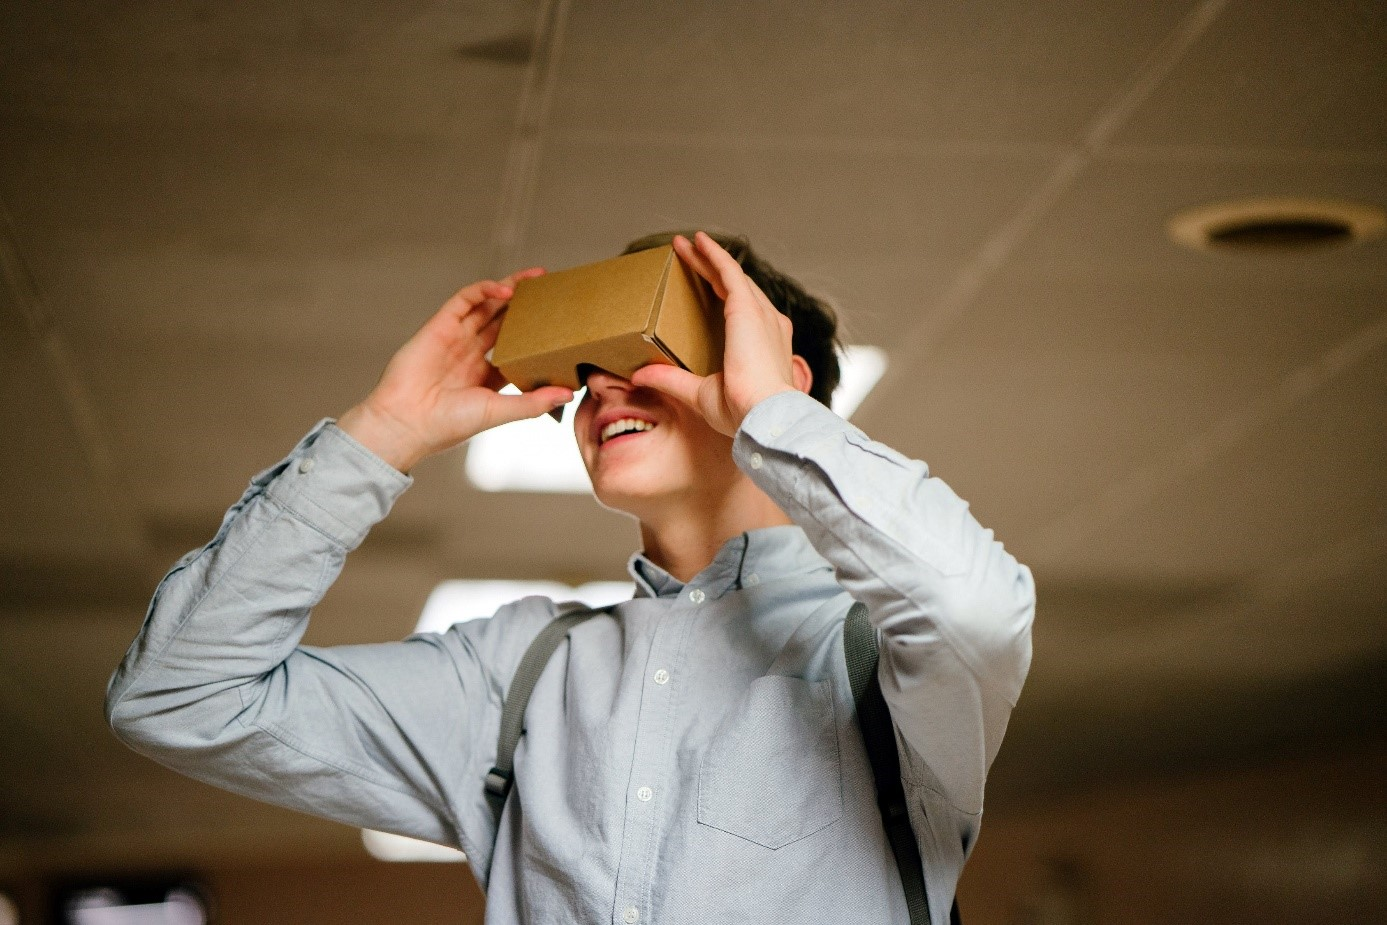 Man using Google Cardboard VR headset